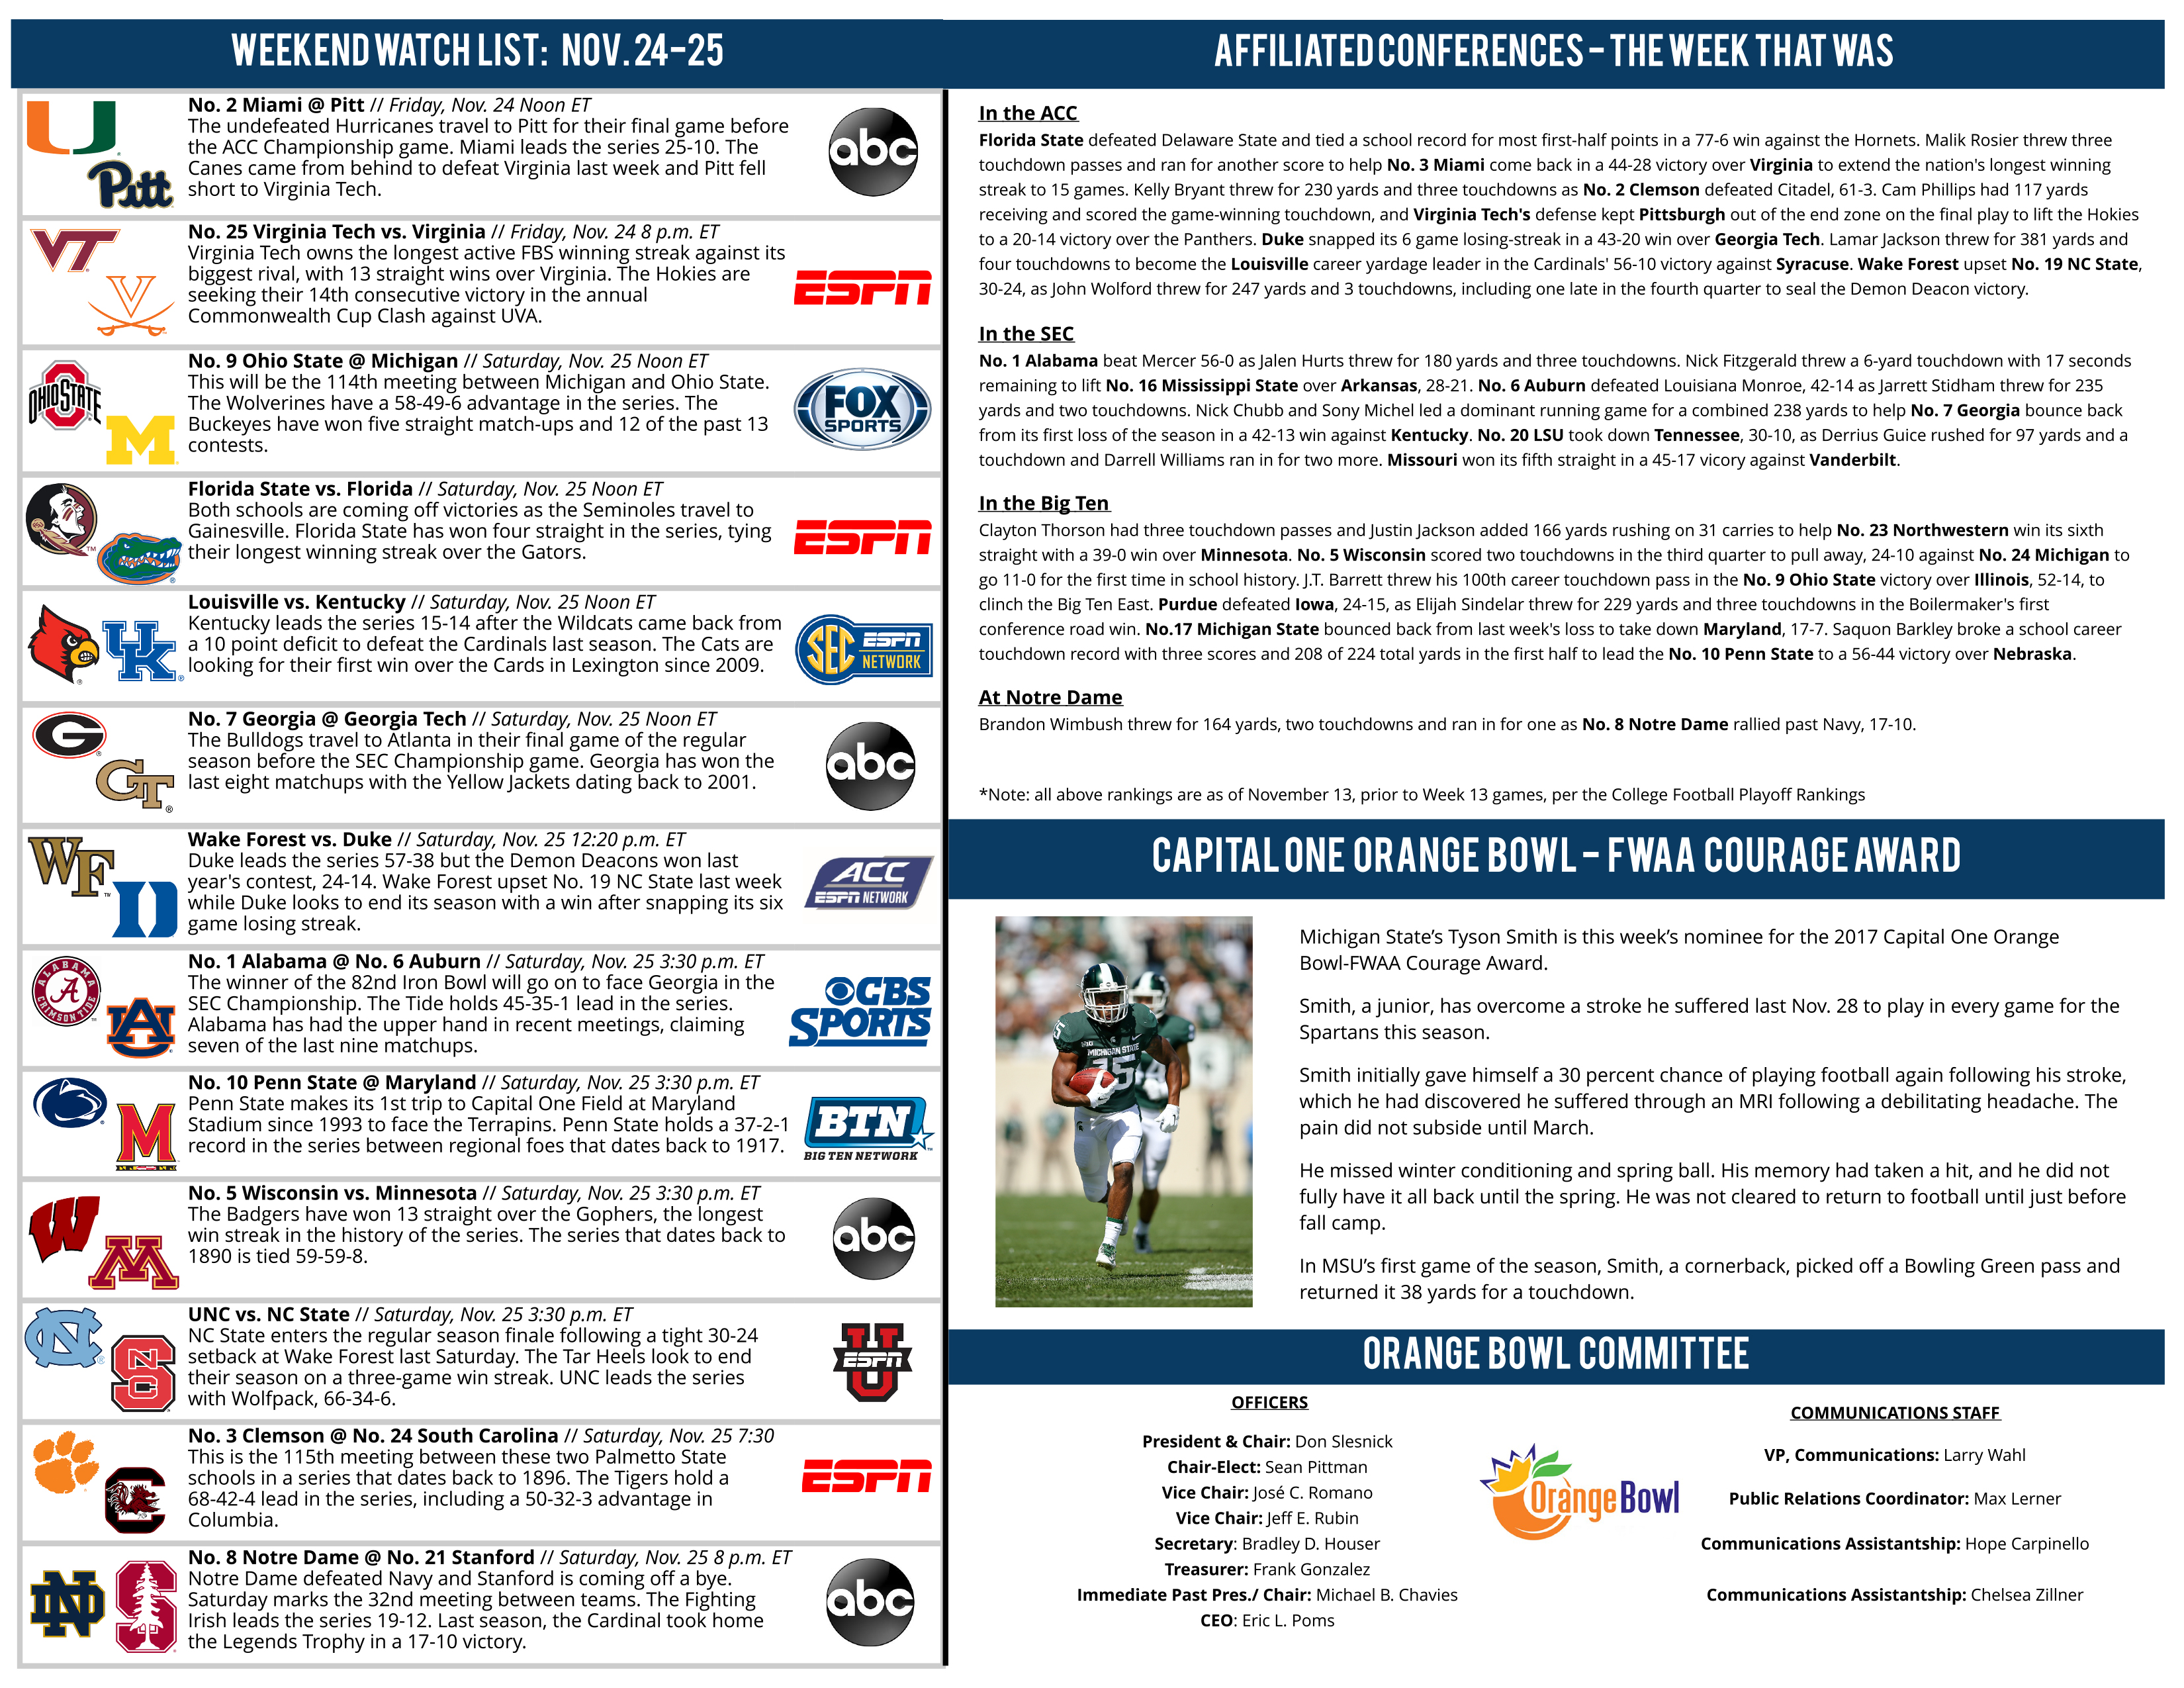 2017-The-Road-To-South-Florida-Week-13-2